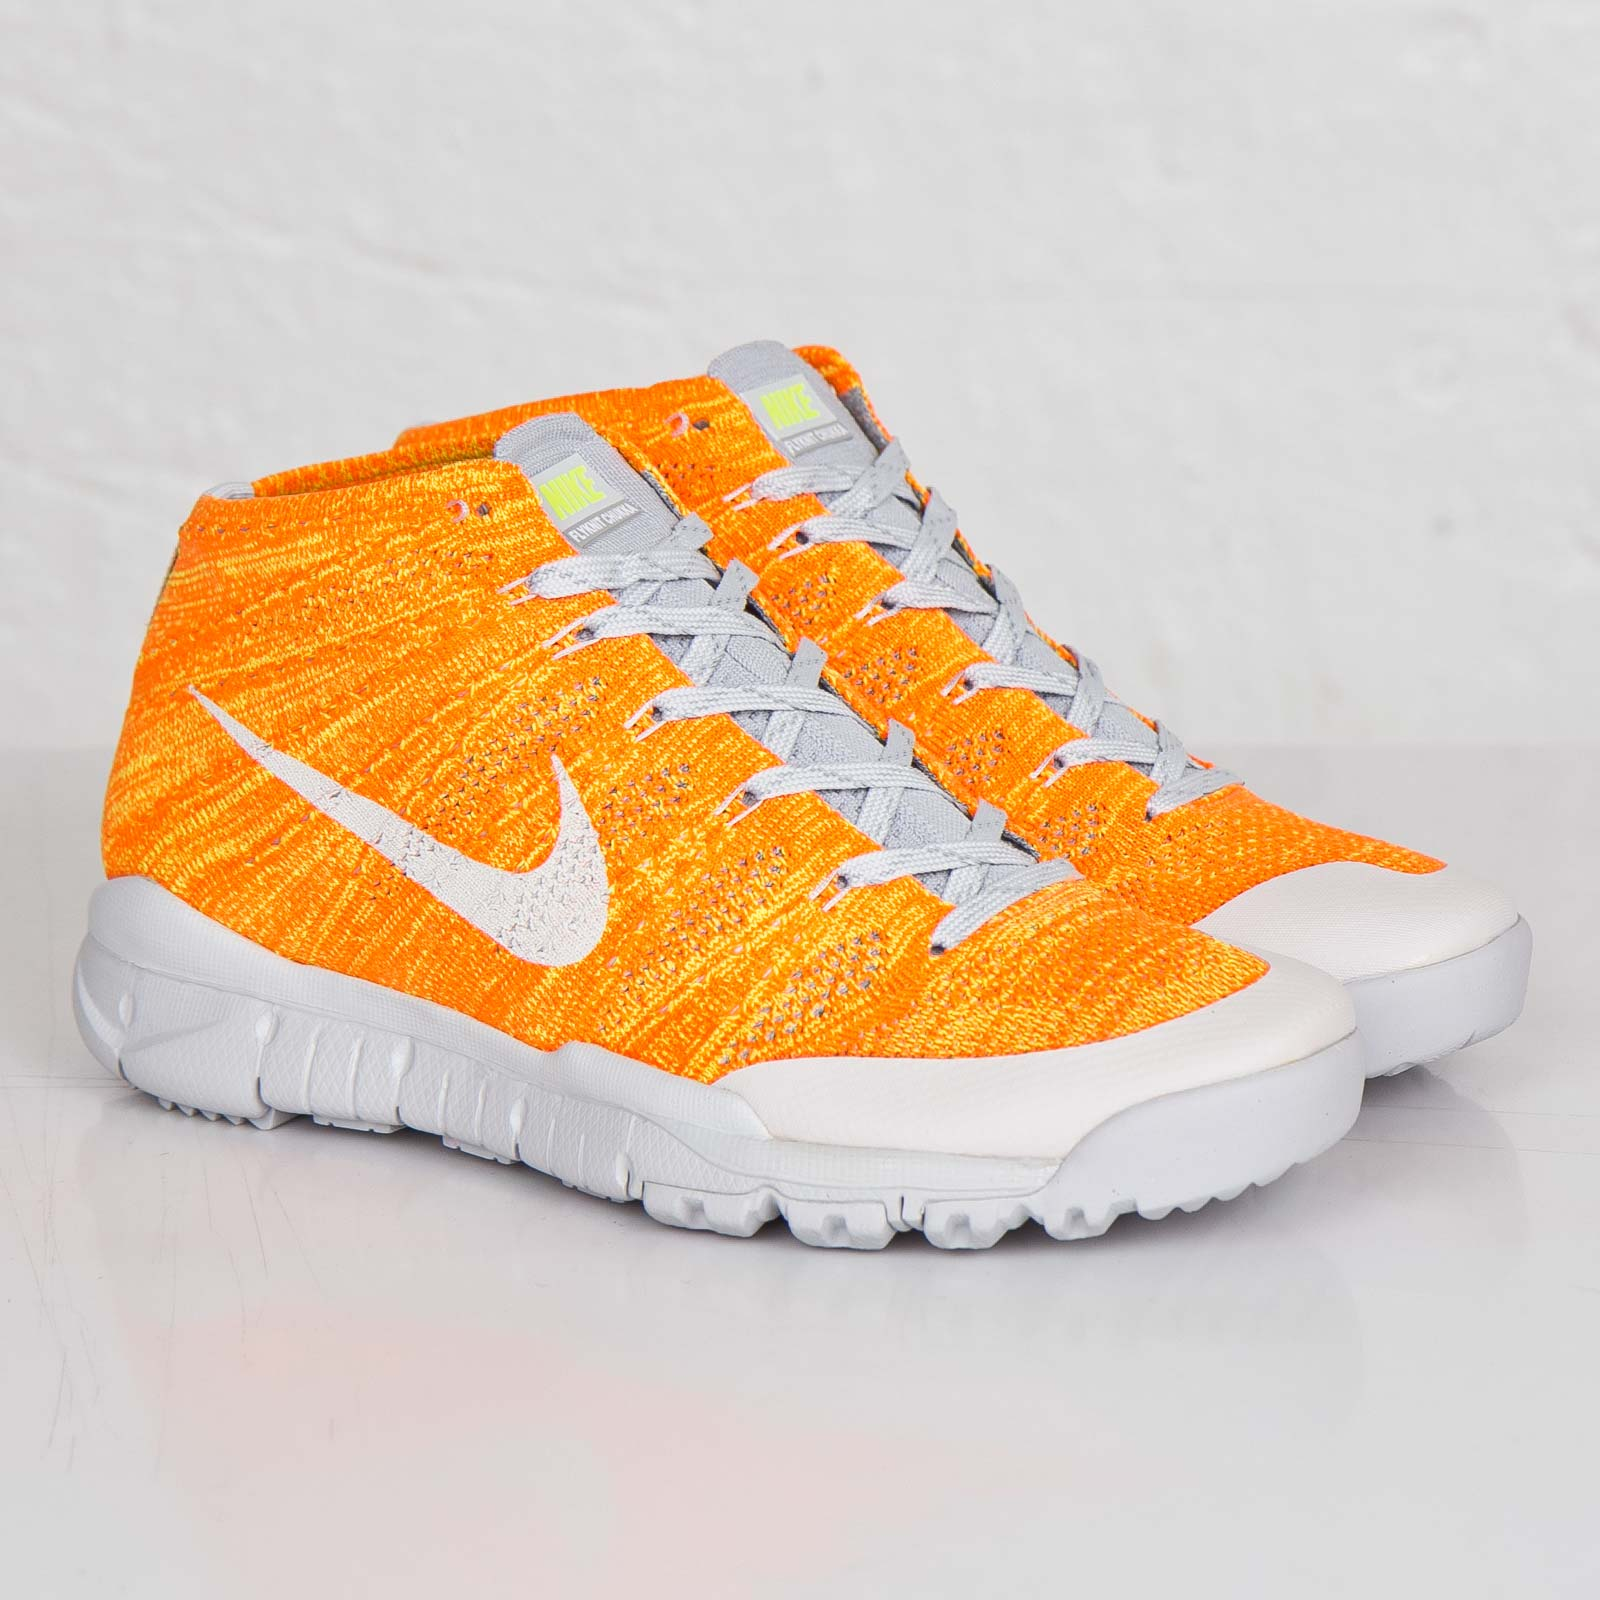 outlet store fbcb7 02746 Nike Flyknit Trainer Chukka SFB SP